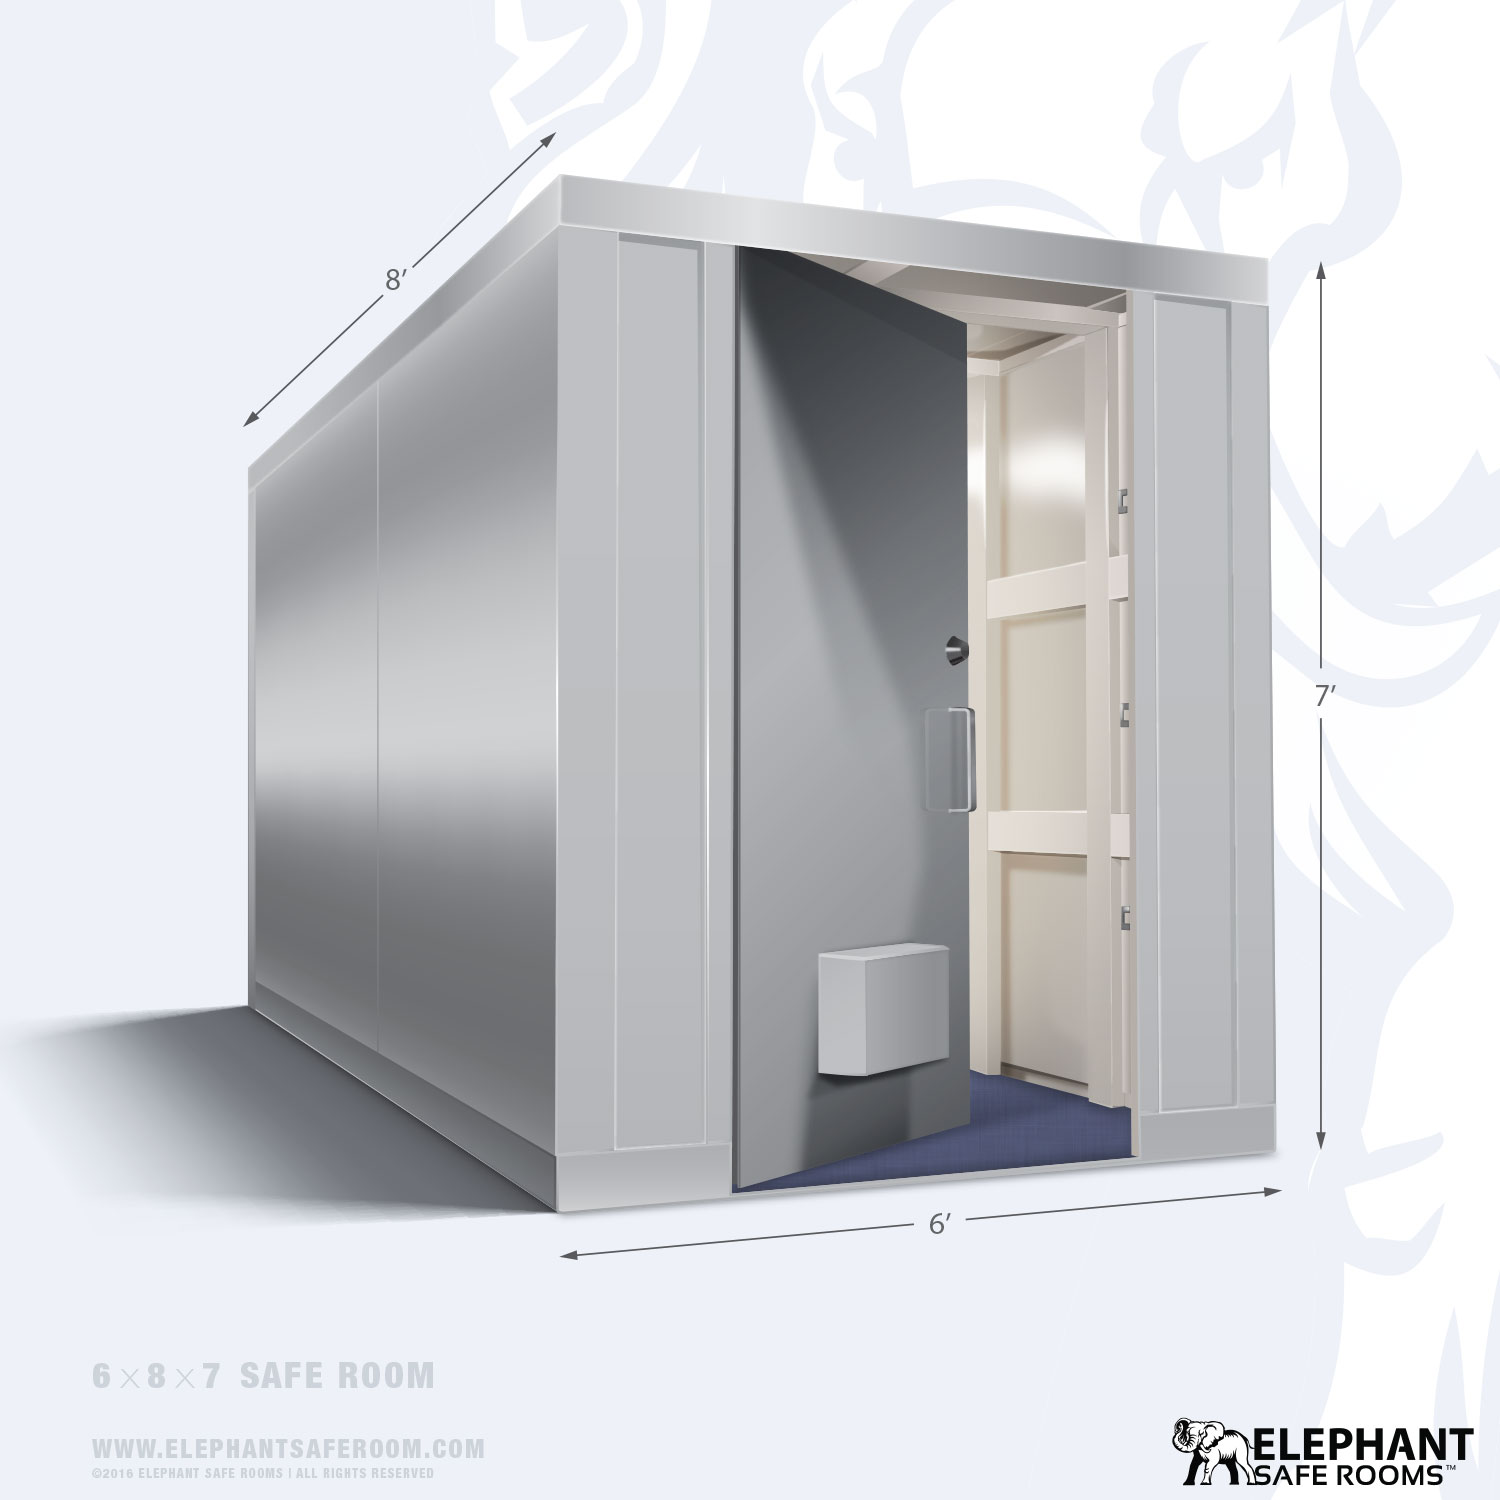 6 39 x 8 39 safe room elephant safe room for Safe rooms